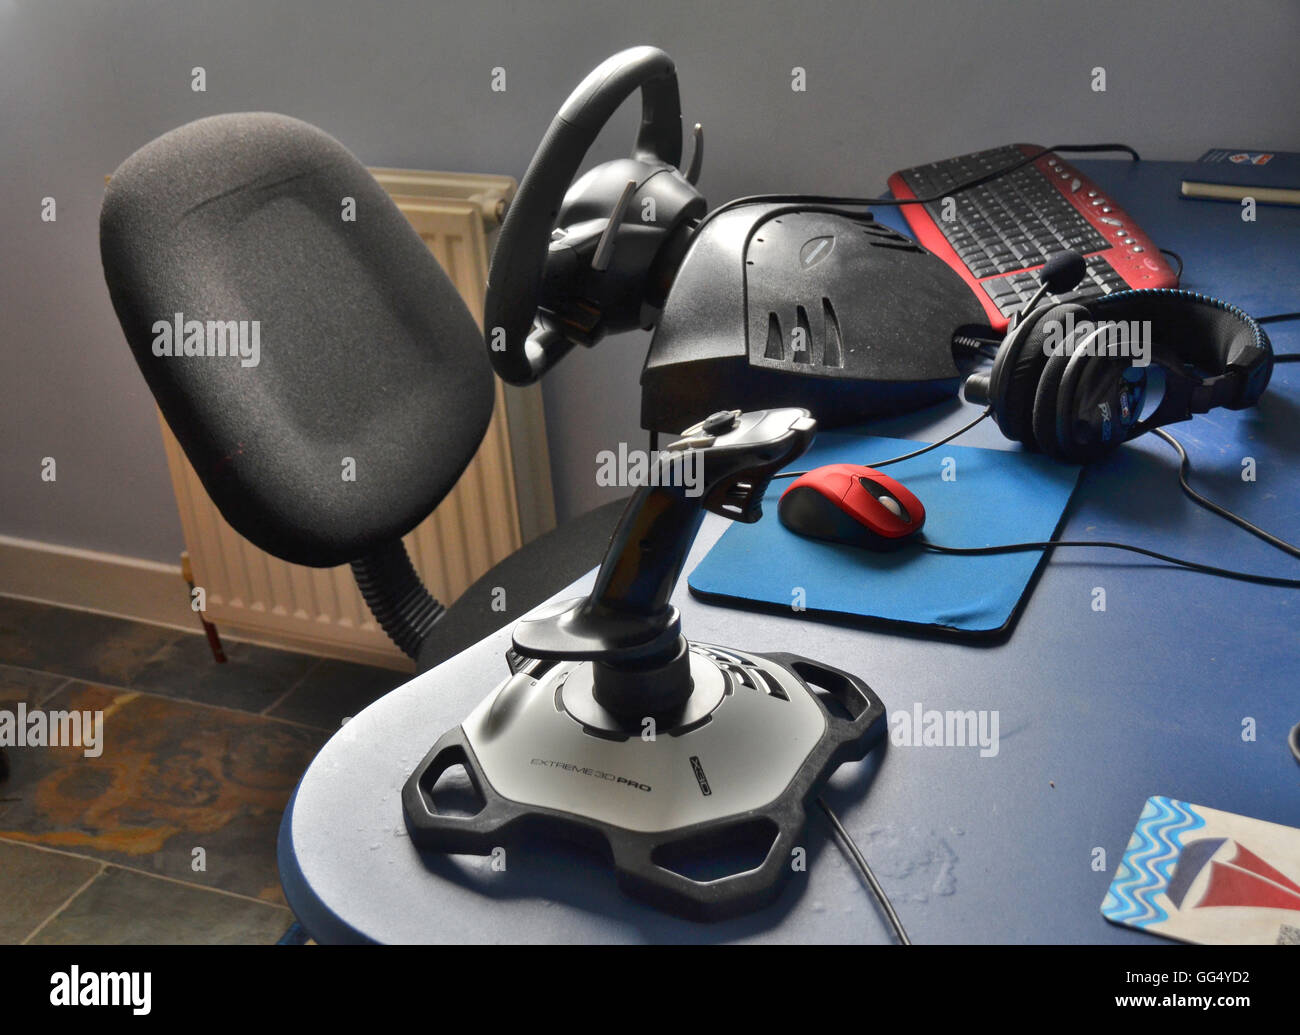 gaming rig, station, including accessories connected to the  PC,  such as joystick,headphones, mouse, keyboard  - Stock Image